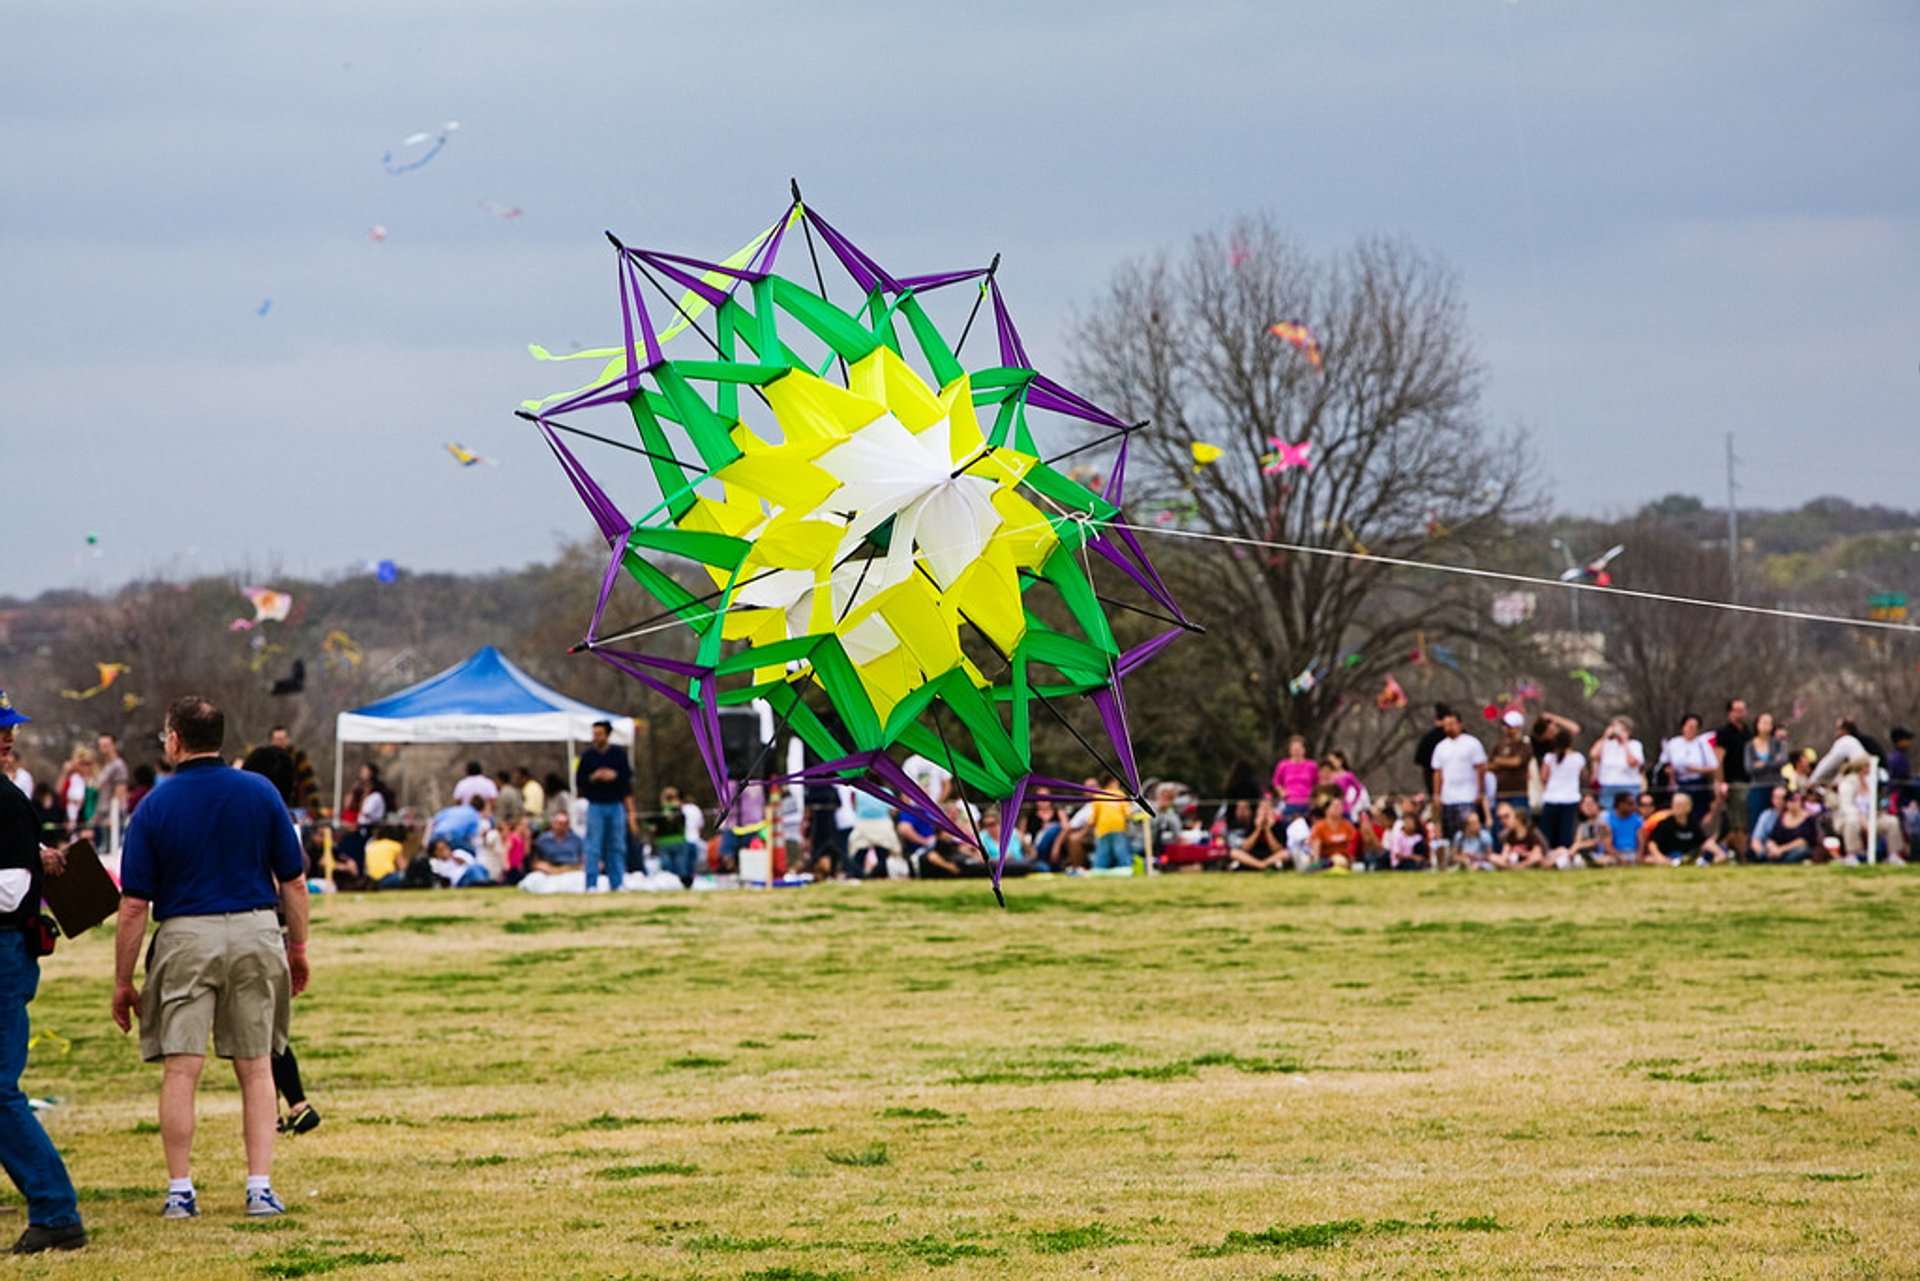 ABC Zilker Kite Festival in Texas 2019 - Best Time